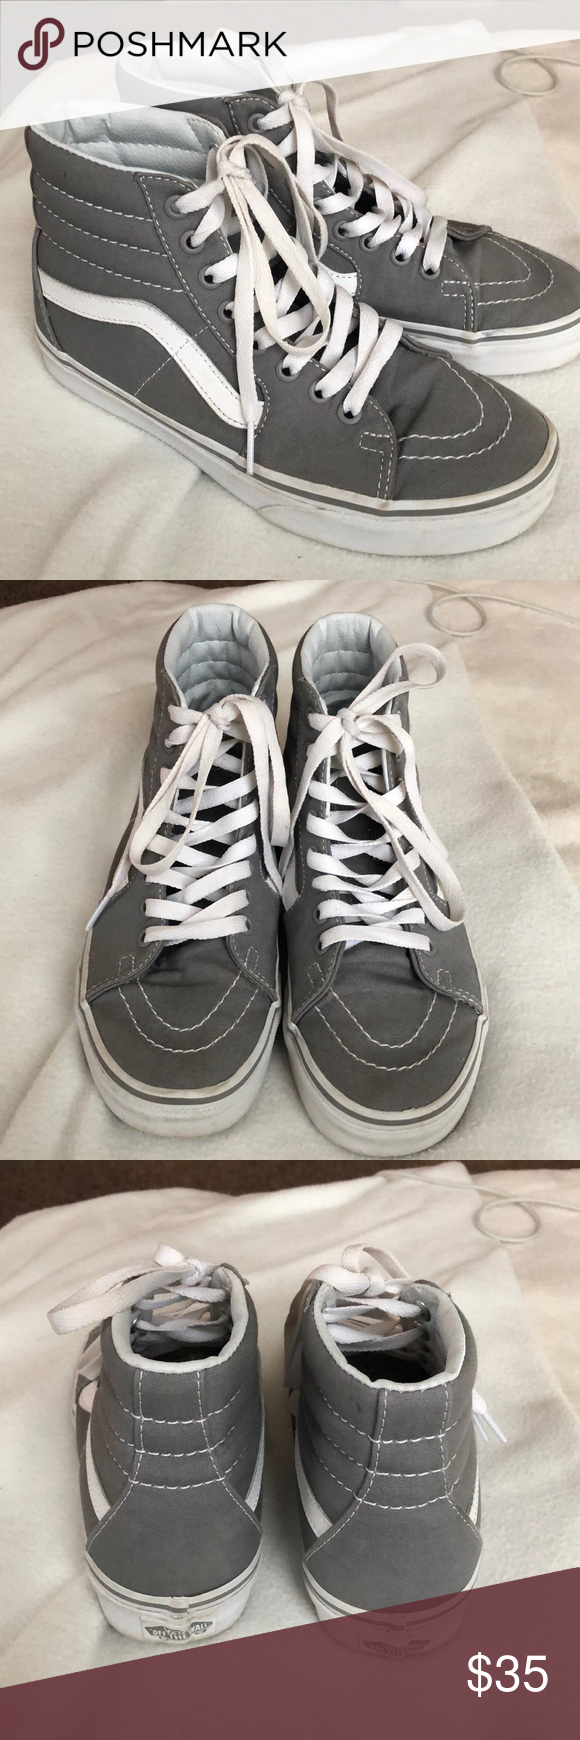 9552fc2a46 Old Skool Vans (high tops) -light grey color -only worn a few times -fairly  new -Very good condition! Vans Shoes Sneakers